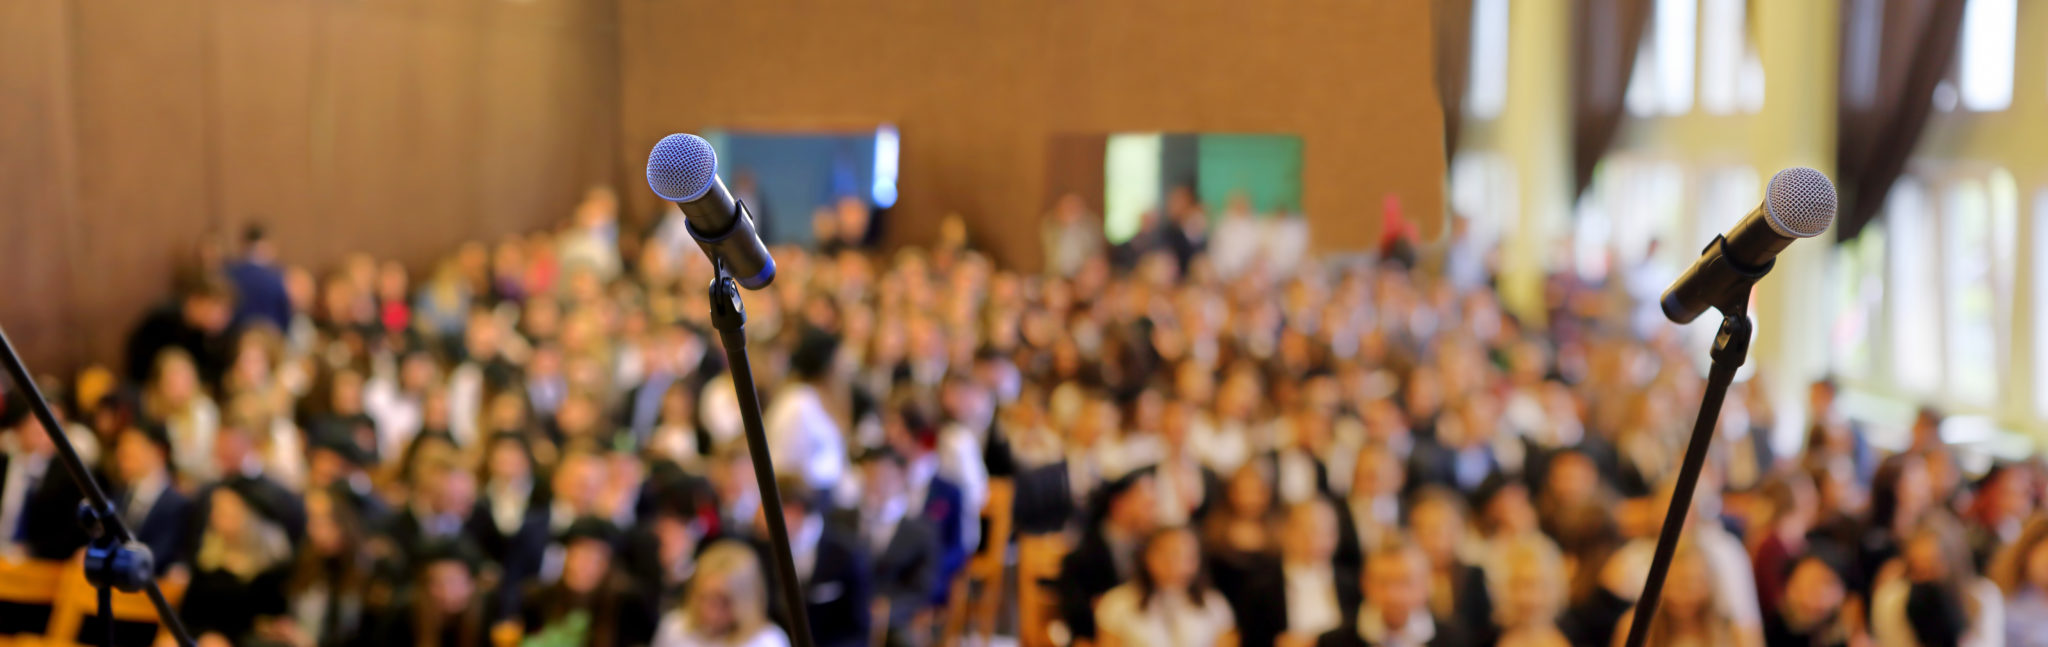 Blurred background of public event exhibition hall show concept with microphones